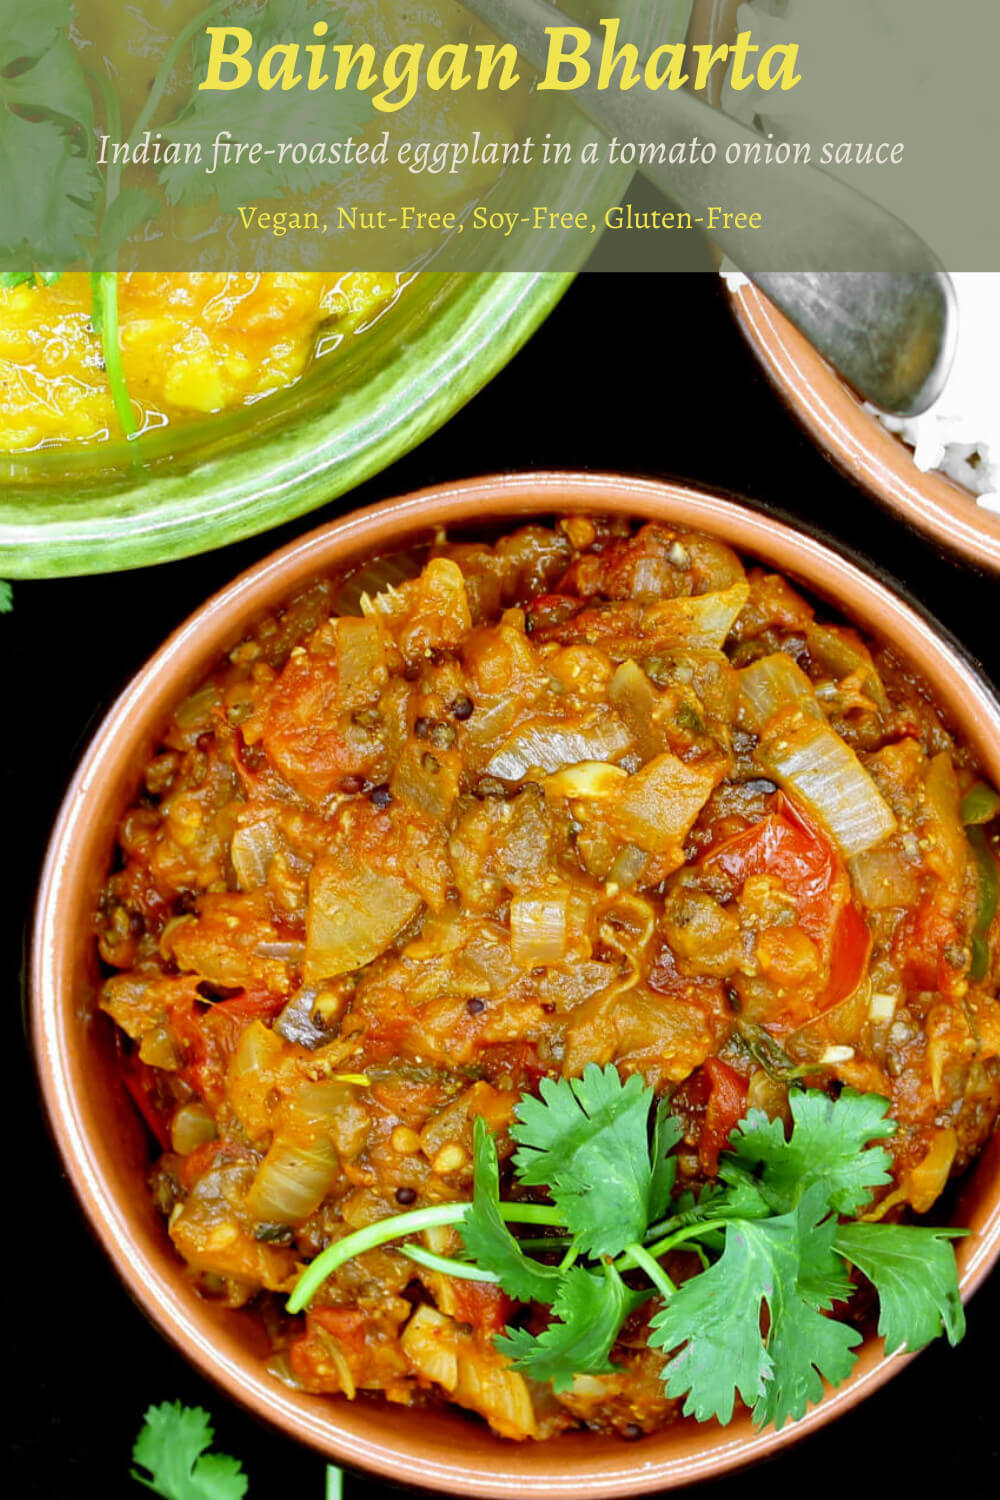 Baingan Bharta. This north Indian dish of fire-roasted eggplant mashed and cooked with tomatoes and onions is an Indian restaurant favorite, and it's amazing with naan or roti or a simple Indian dinner of dal and rice. A vegan, soy-free, nut-free and gluten-free recipe. #vegan, #eggplant, #Indian | HolyCowVegan.net